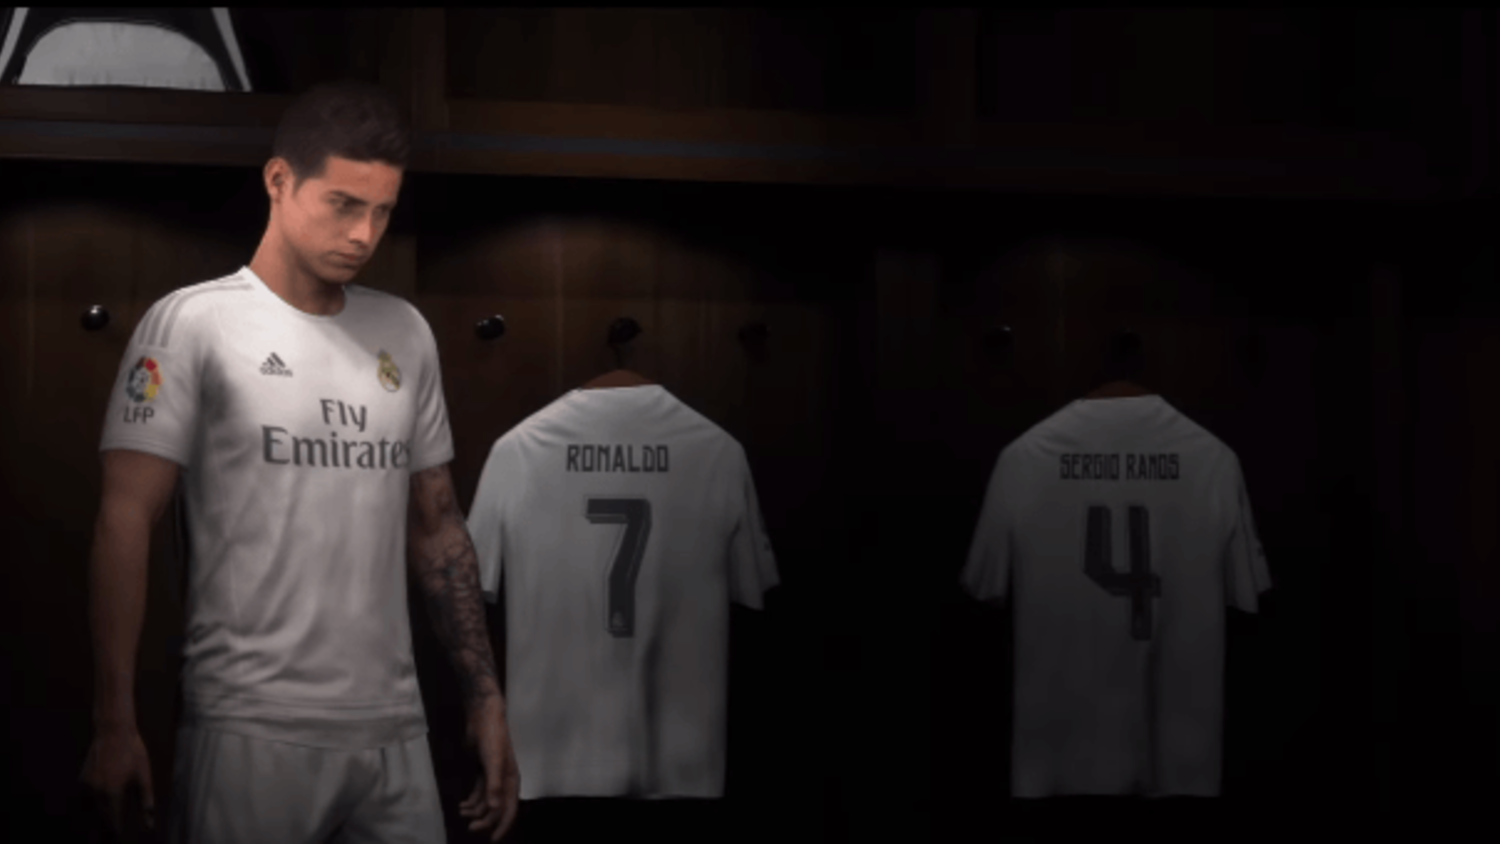 New FIFA 17 gameplay trailer released 'Own Every Moment'